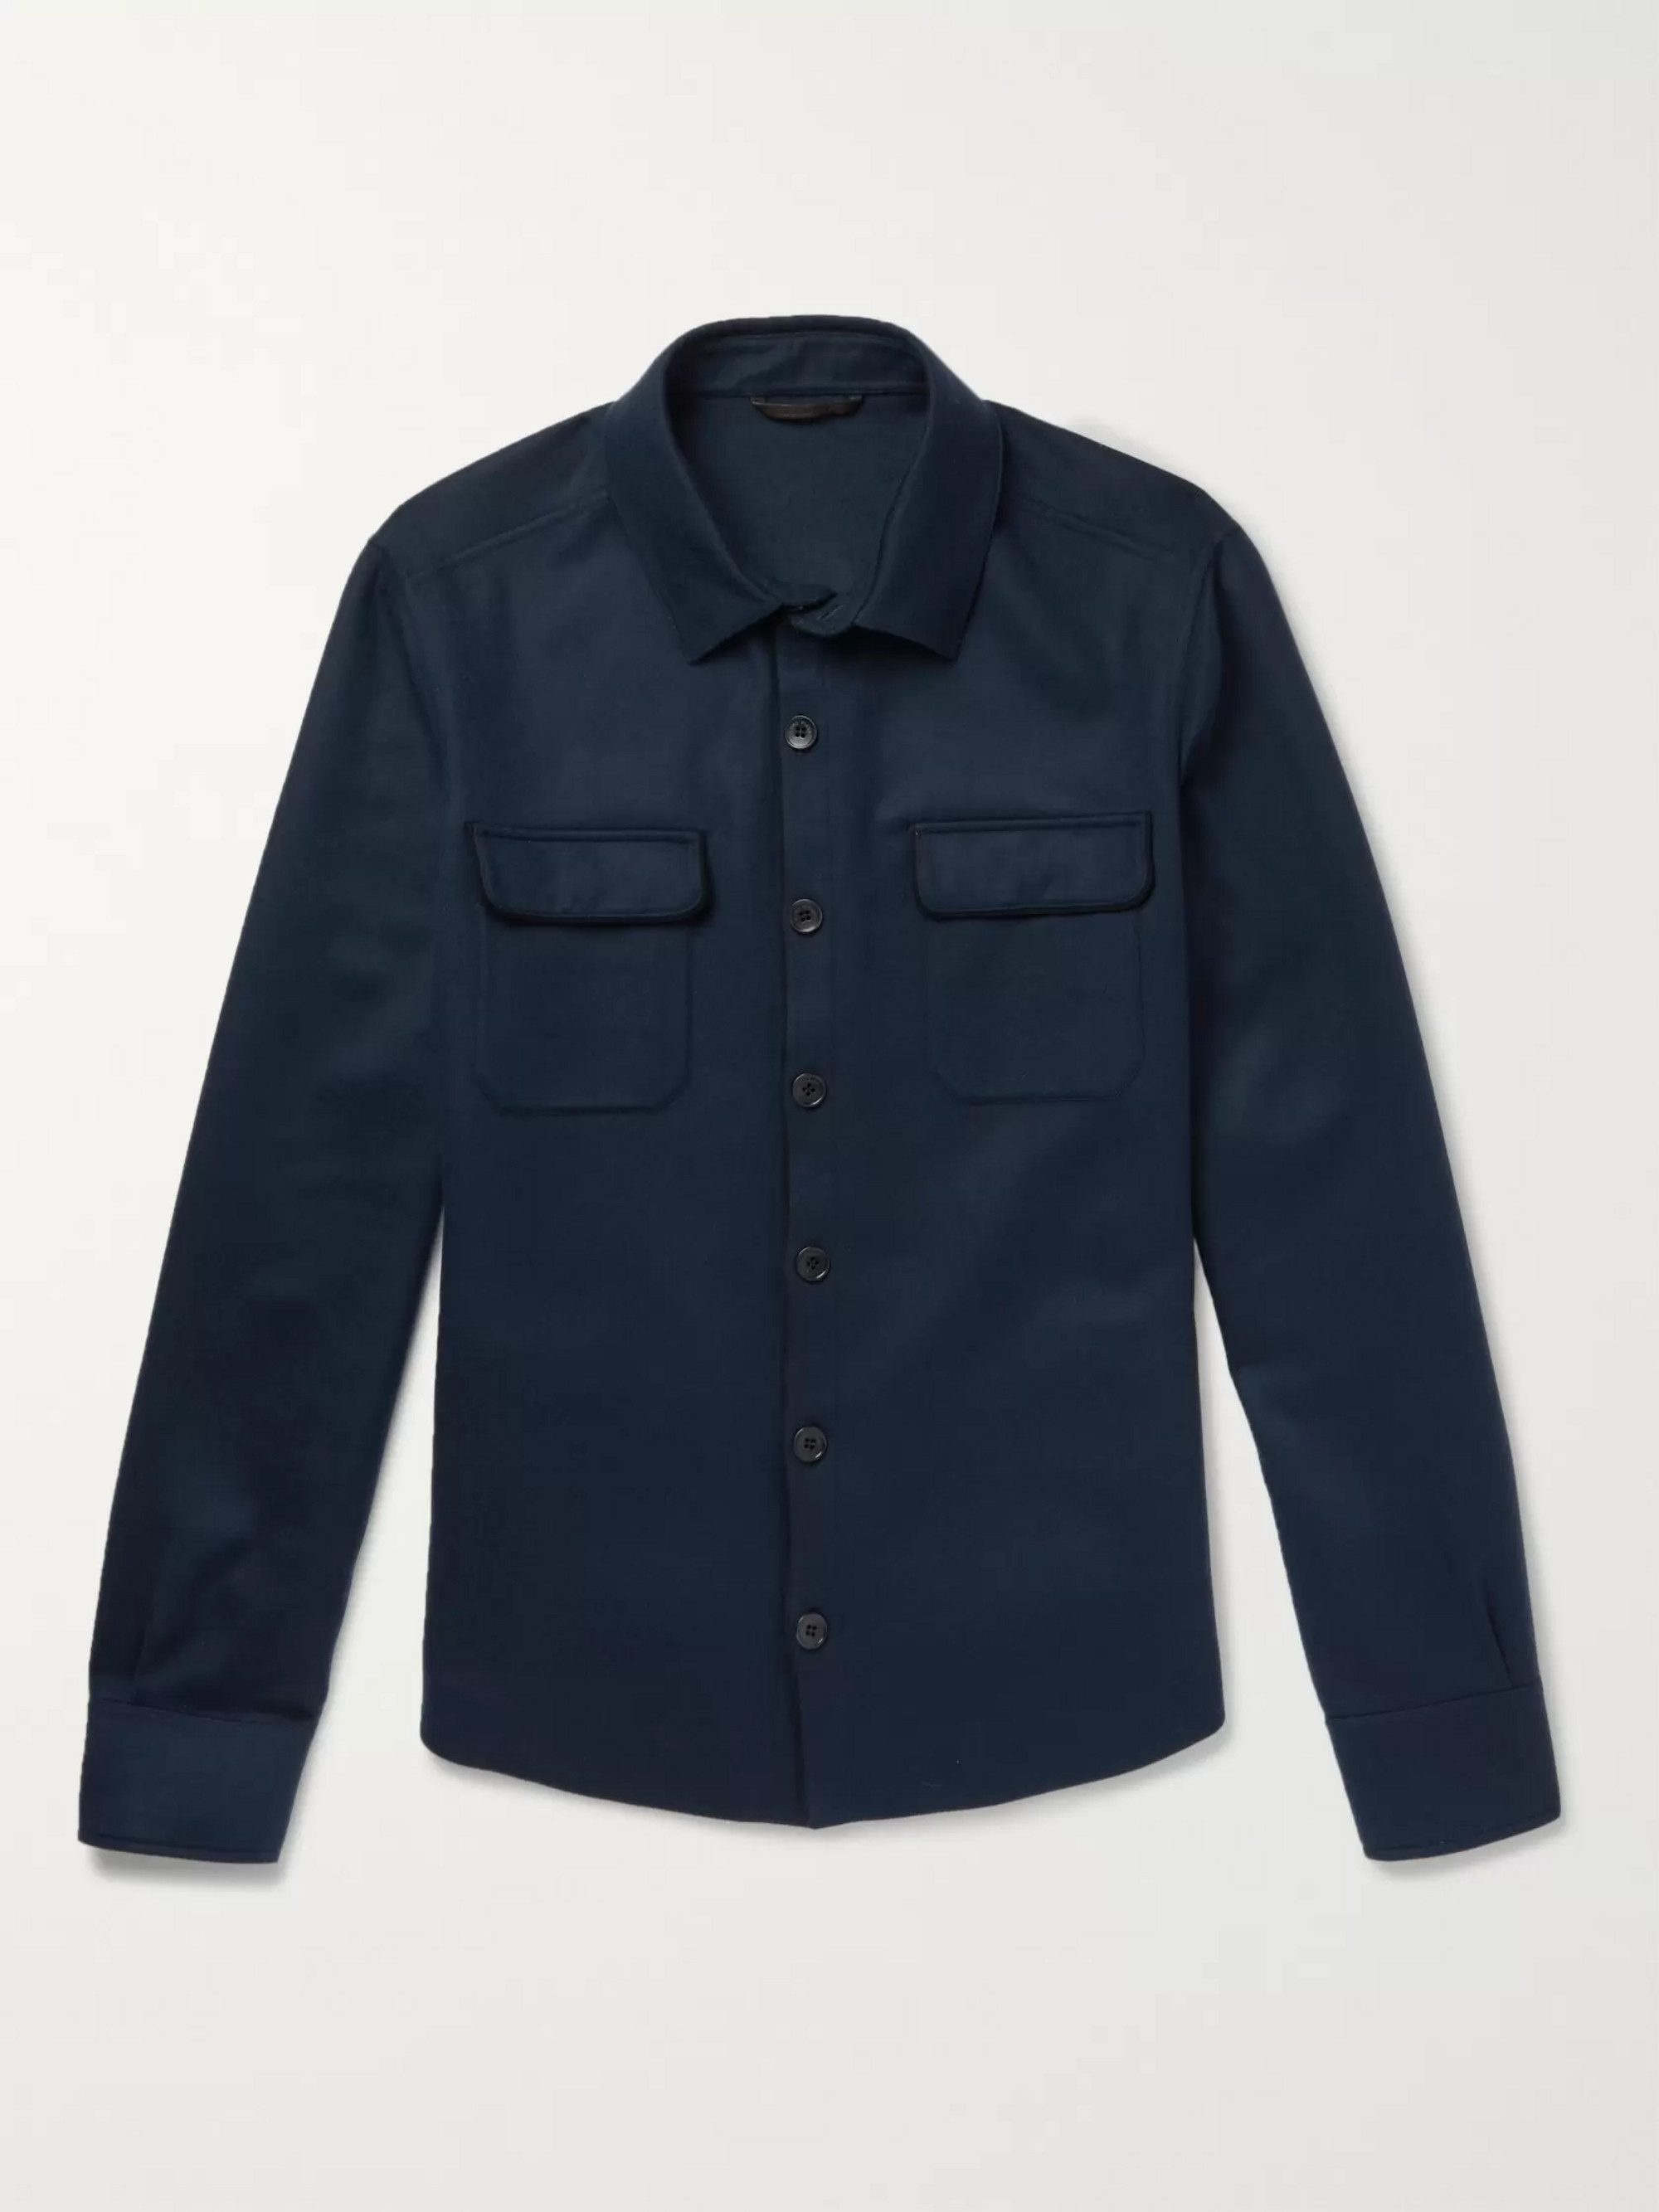 Loro Piana Suede-Trimmed Cashmere Shirt Jacket